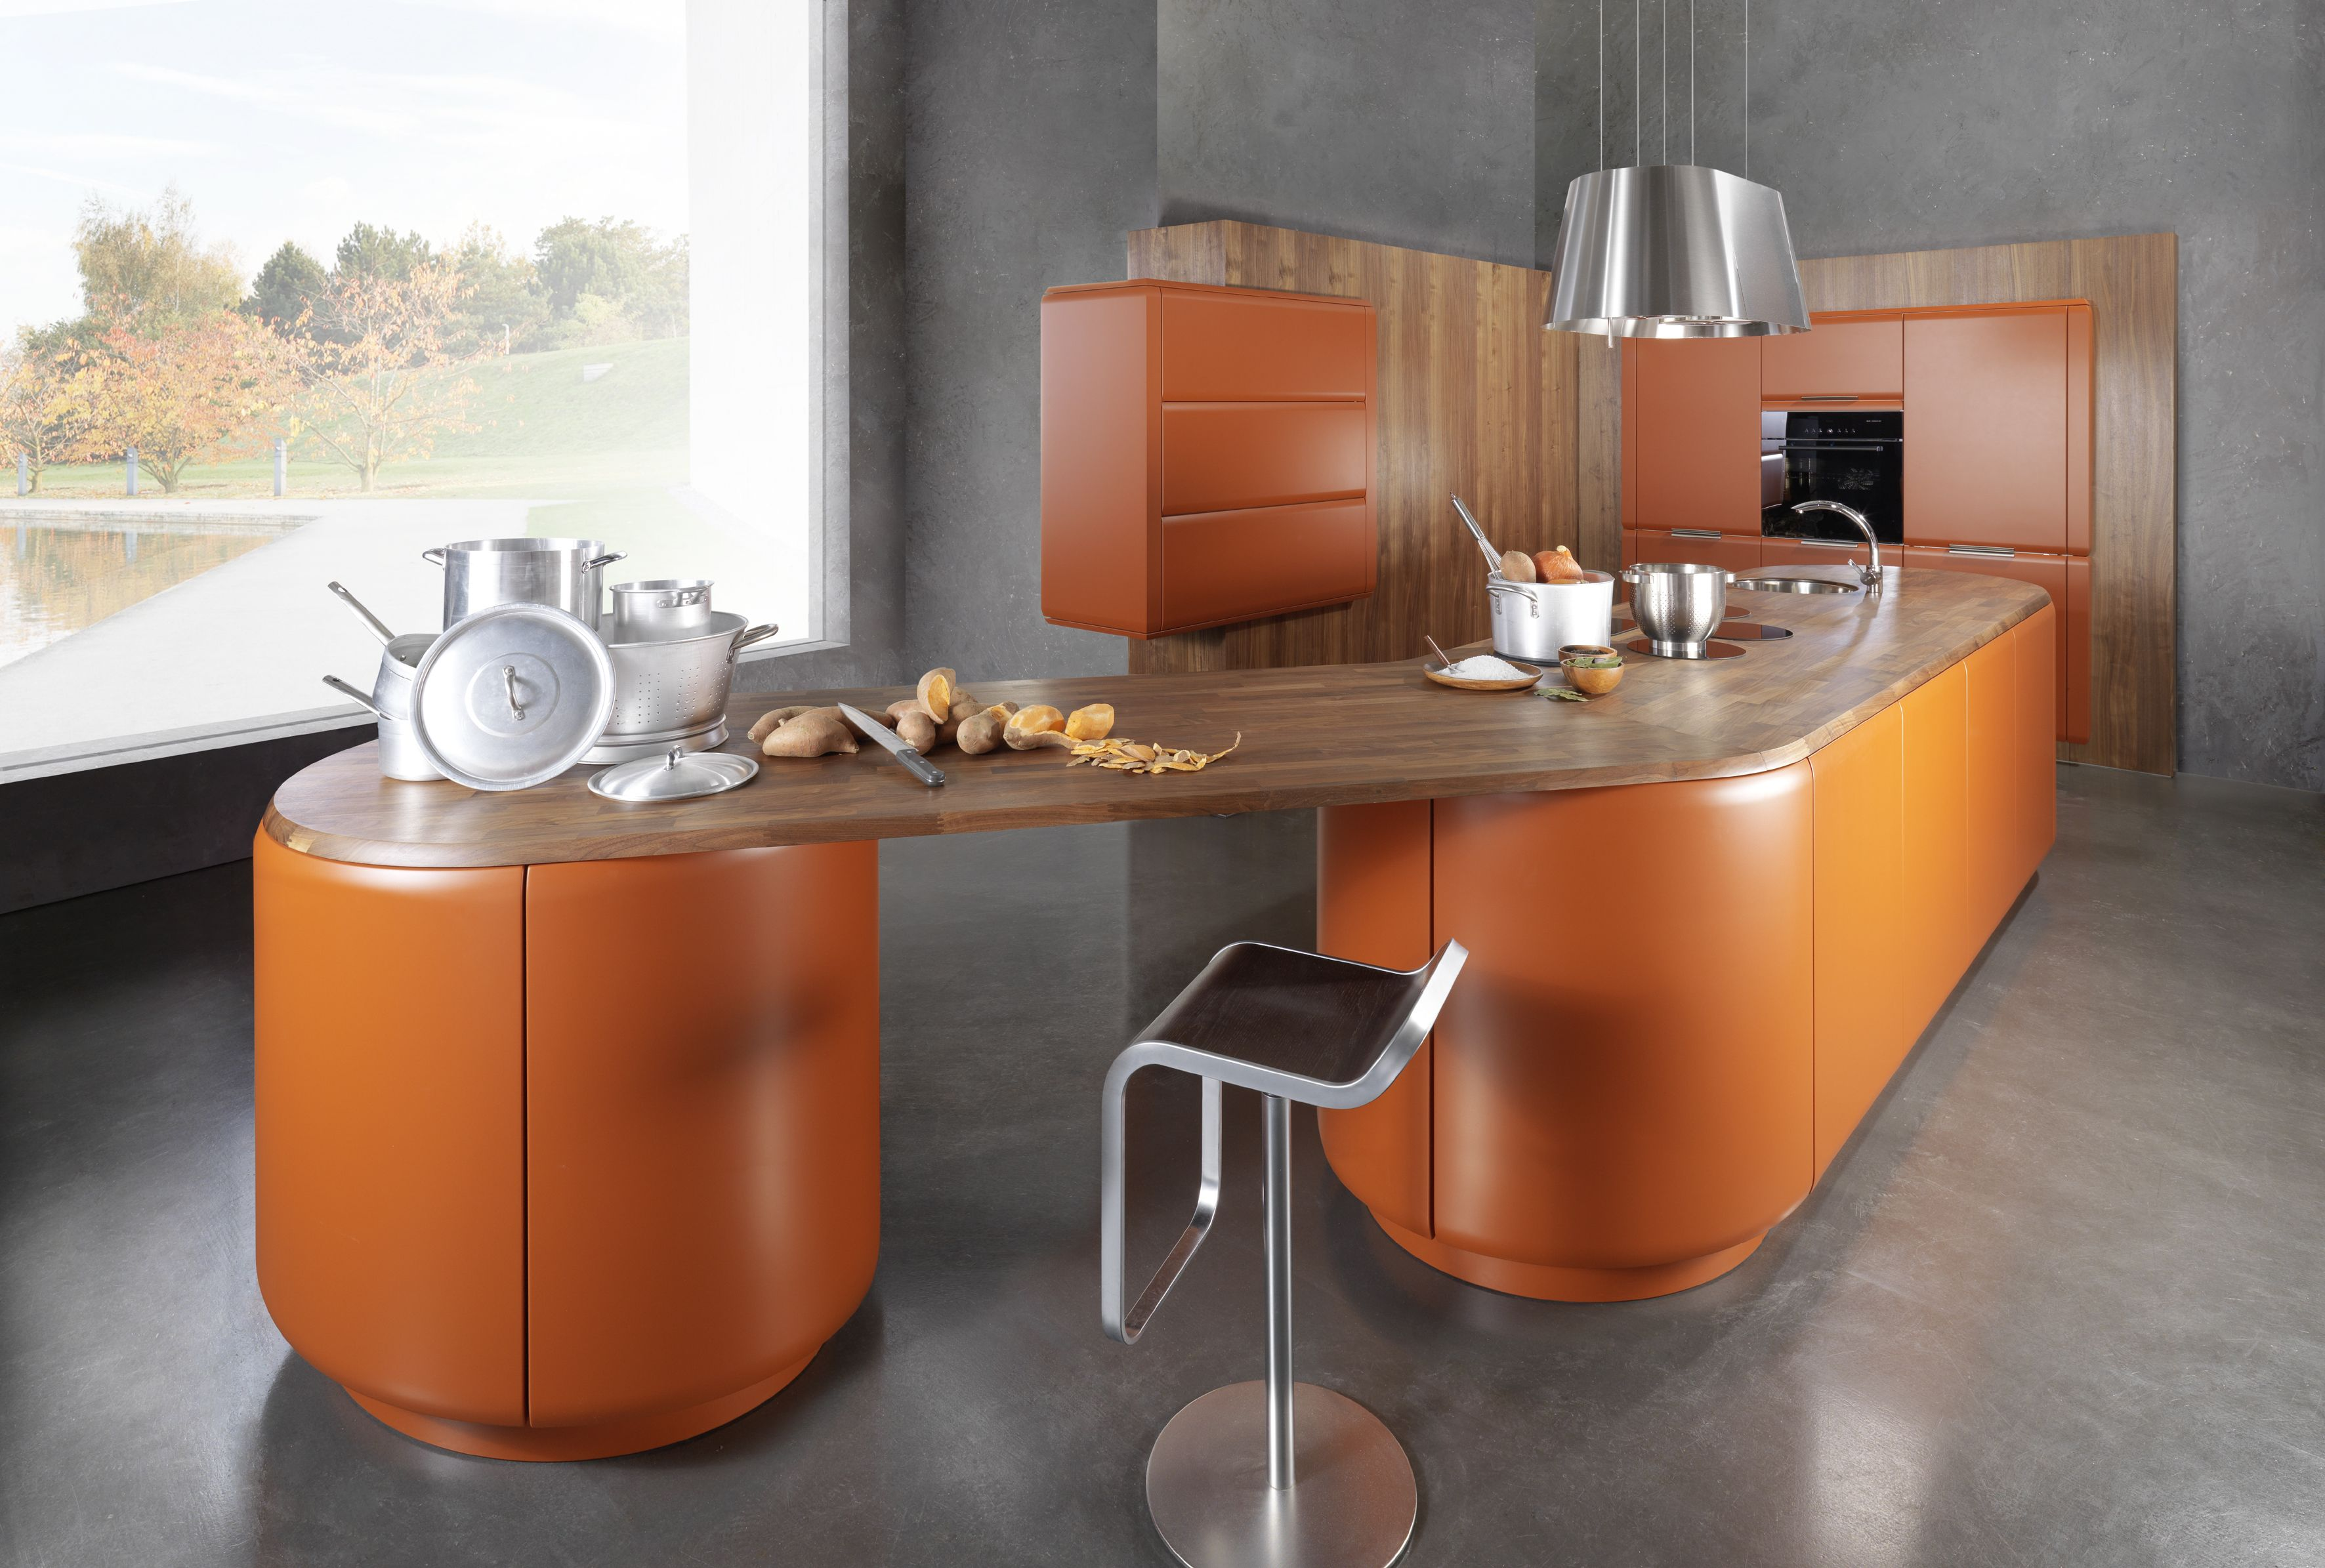 Onda kitchen from Rational in high gloss orange www.rational.de ...